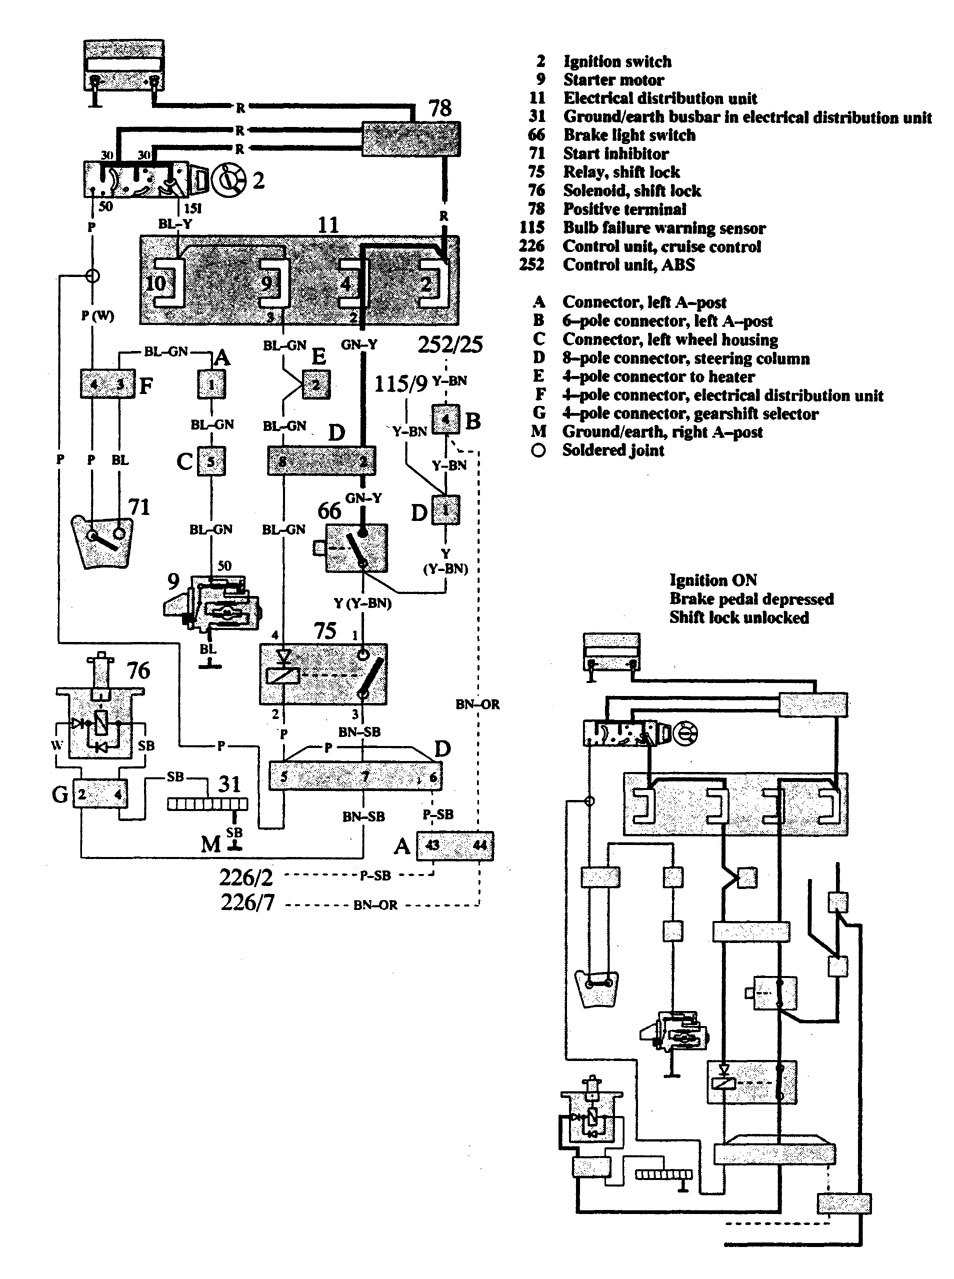 Volvo 850 Ignition Wiring Diagram : Volvo wiring diagram images